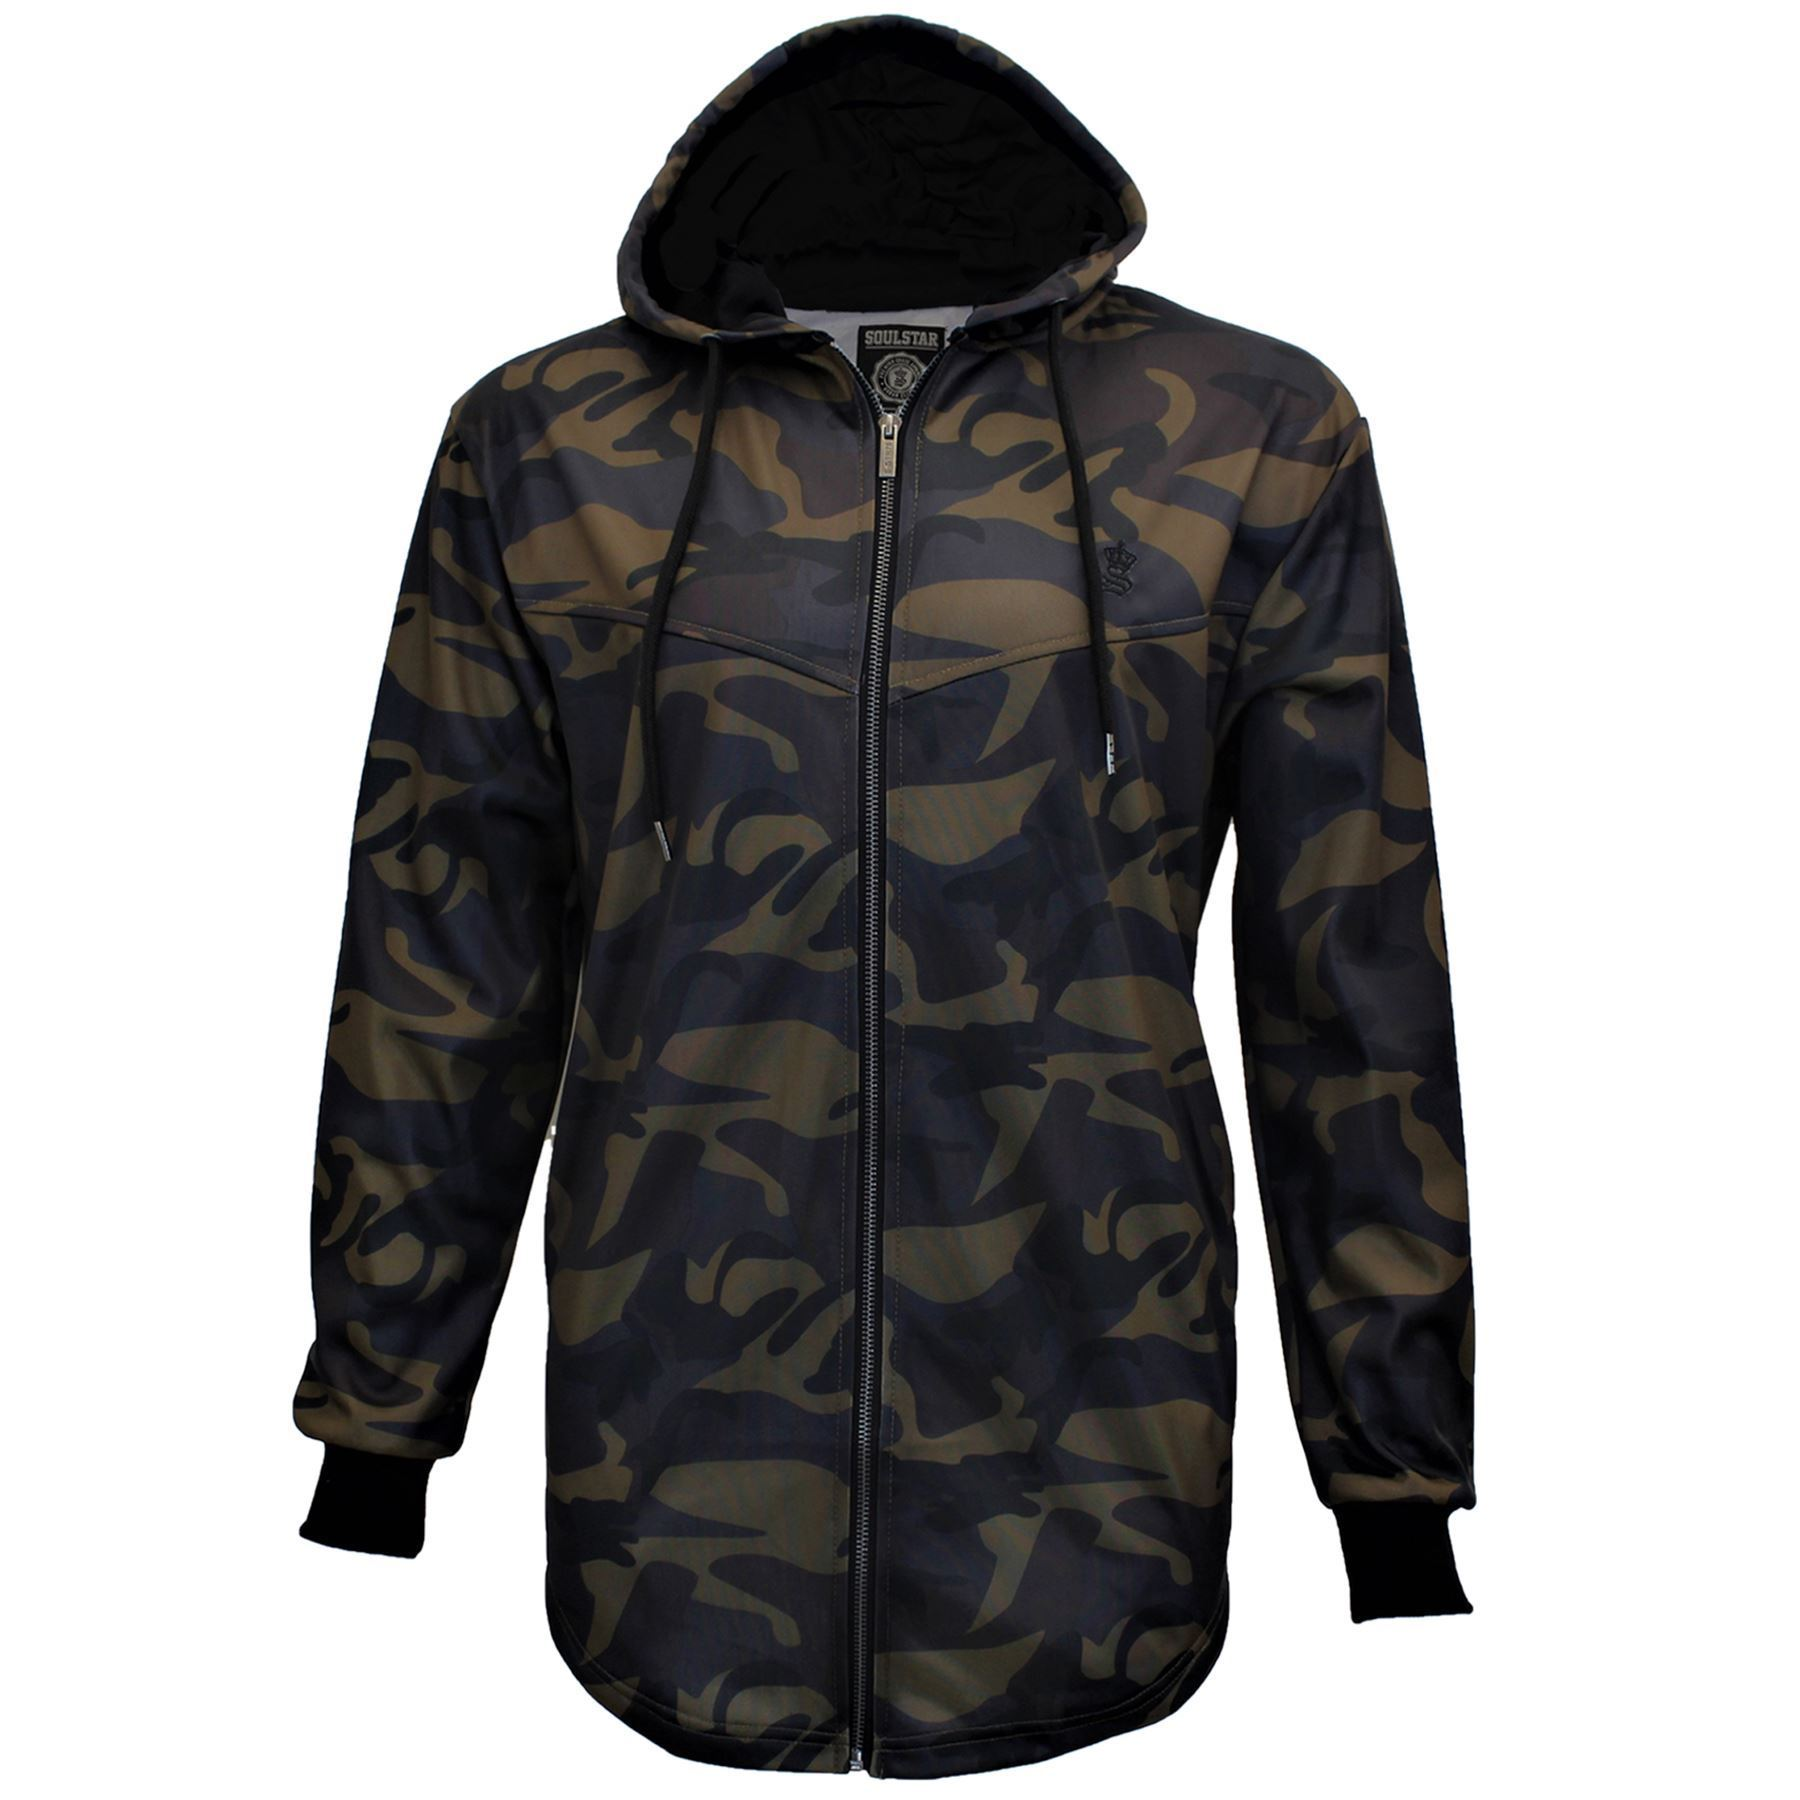 Shop for camo zip hoodie sweatshirt online at Target. Free shipping on purchases over $35 and save 5% every day with your Target REDcard.